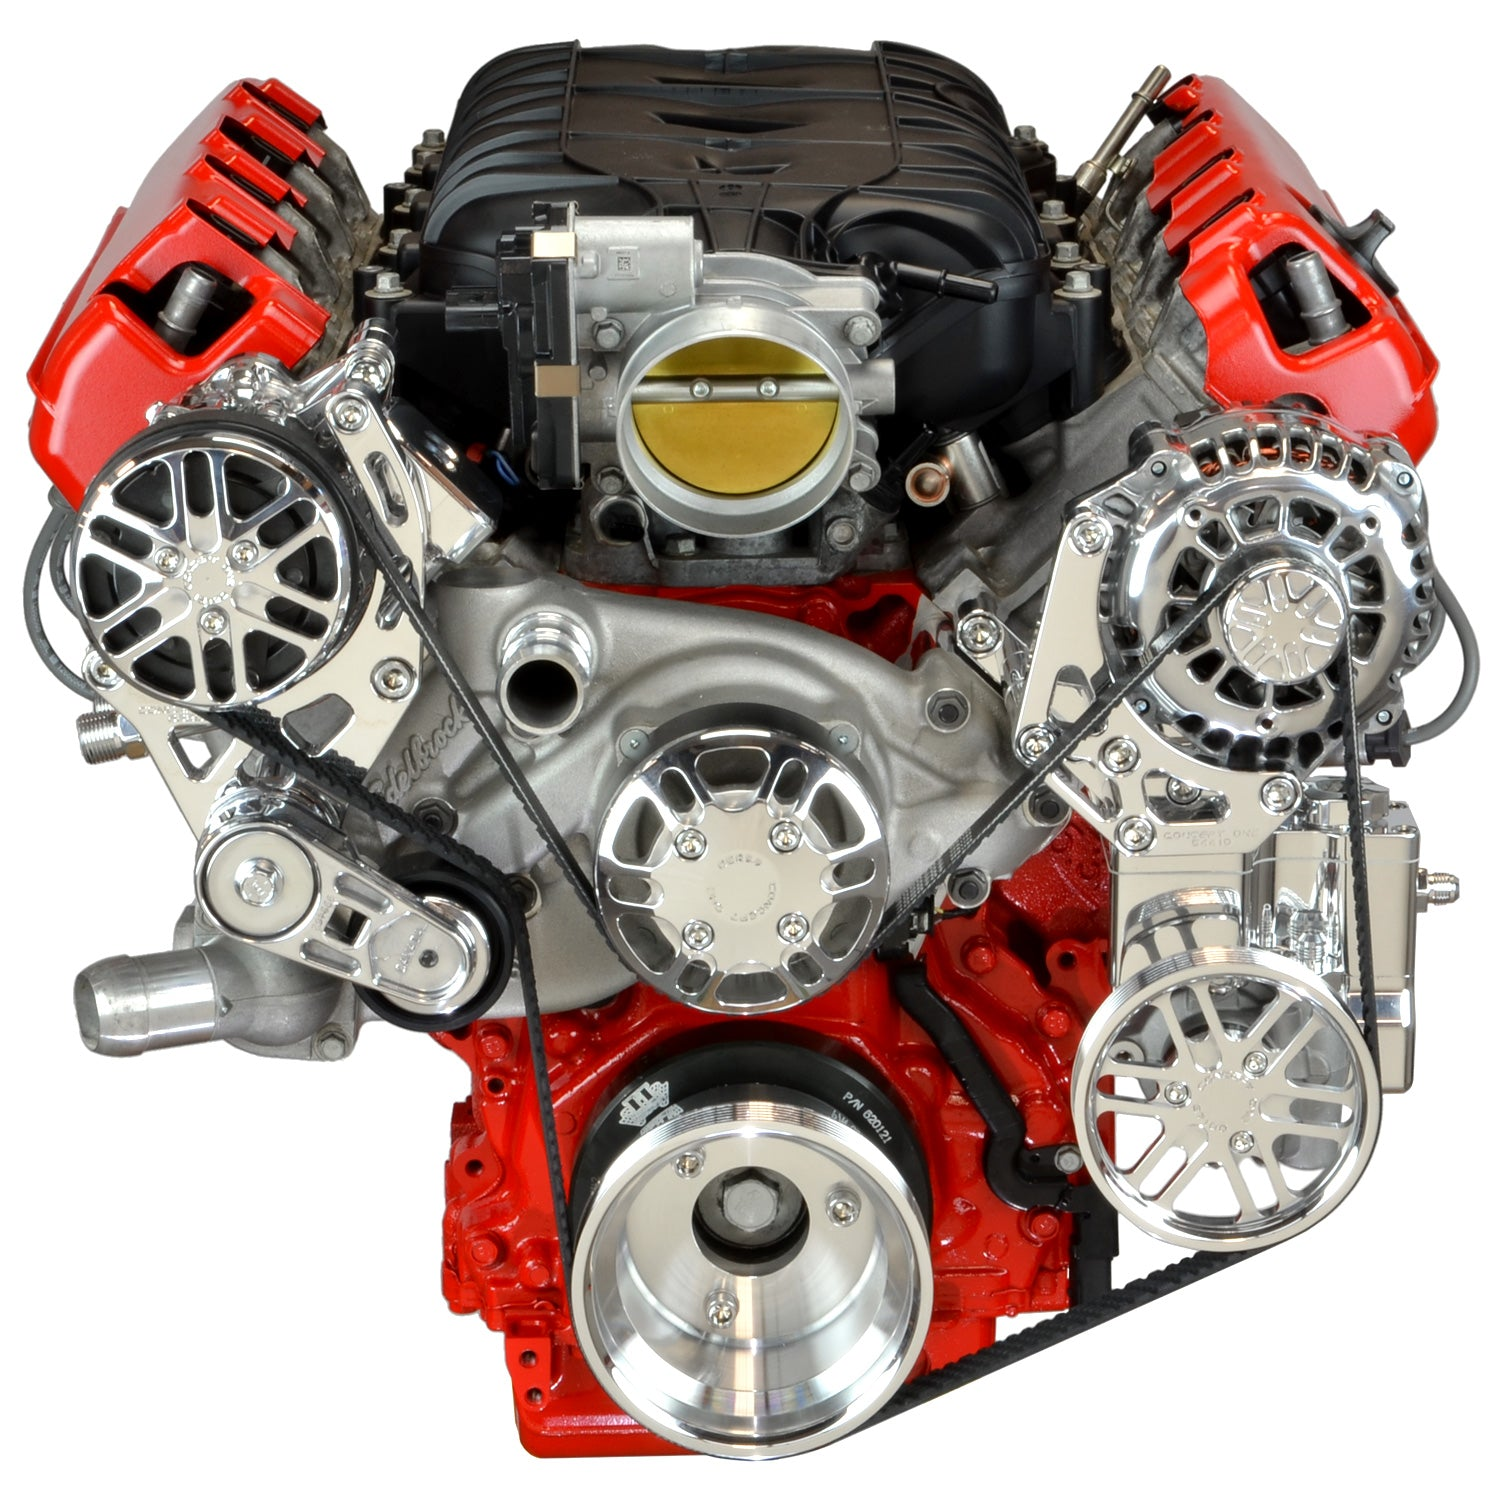 Chevy LT Victory Series Kit with Alternator, A/C and Power Steering